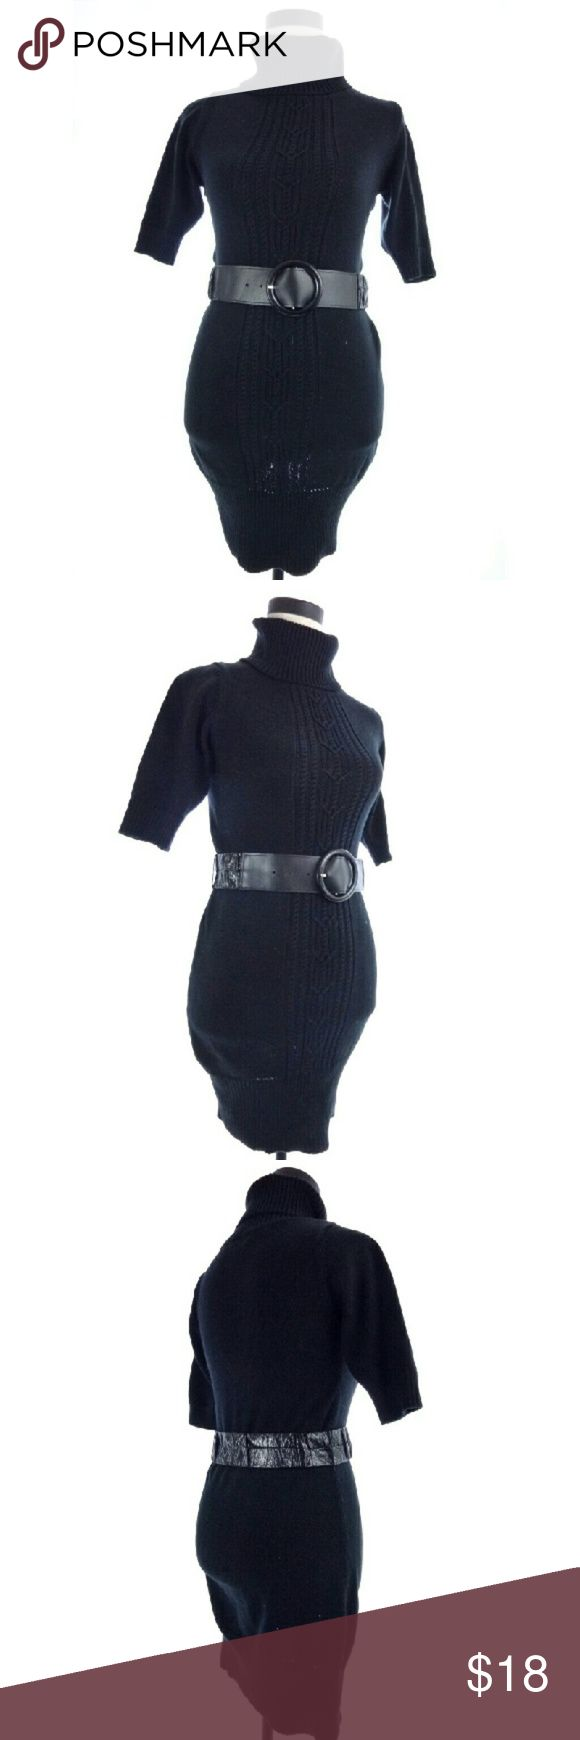 Cool Sweater Dress Black Turtleneck Sweater Dress Small XOXO black cable knit belted sweater dress ... Check more at http://24myshop.tk/my-desires/sweater-dress-black-turtleneck-sweater-dress-small-xoxo-black-cable-knit-belted-sweater-dress/